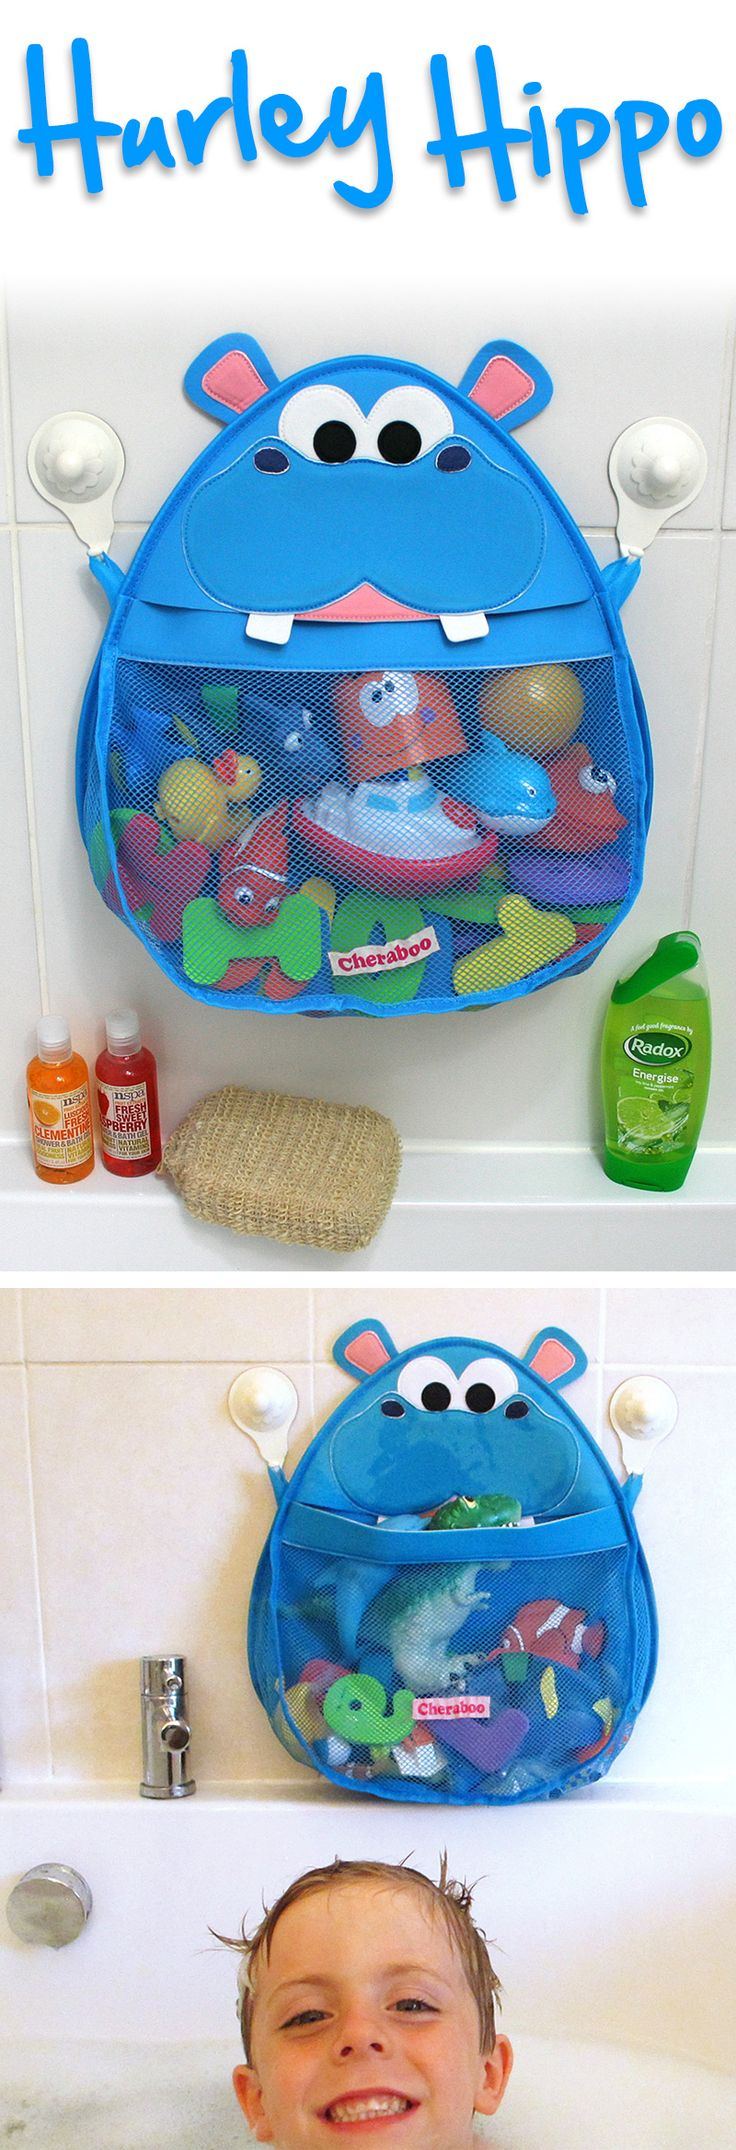 "How cute is this bath toy organizer from Cheraboo? ""Make bathtime fun time, with the Hurley Hippo bath toy storage solution that encourages your little ones to put away their toys so you enjoy a clutter-free tub and an organized bathroom."" http://www.amazon.com/dp/B00WHU5ND0 #amazon"